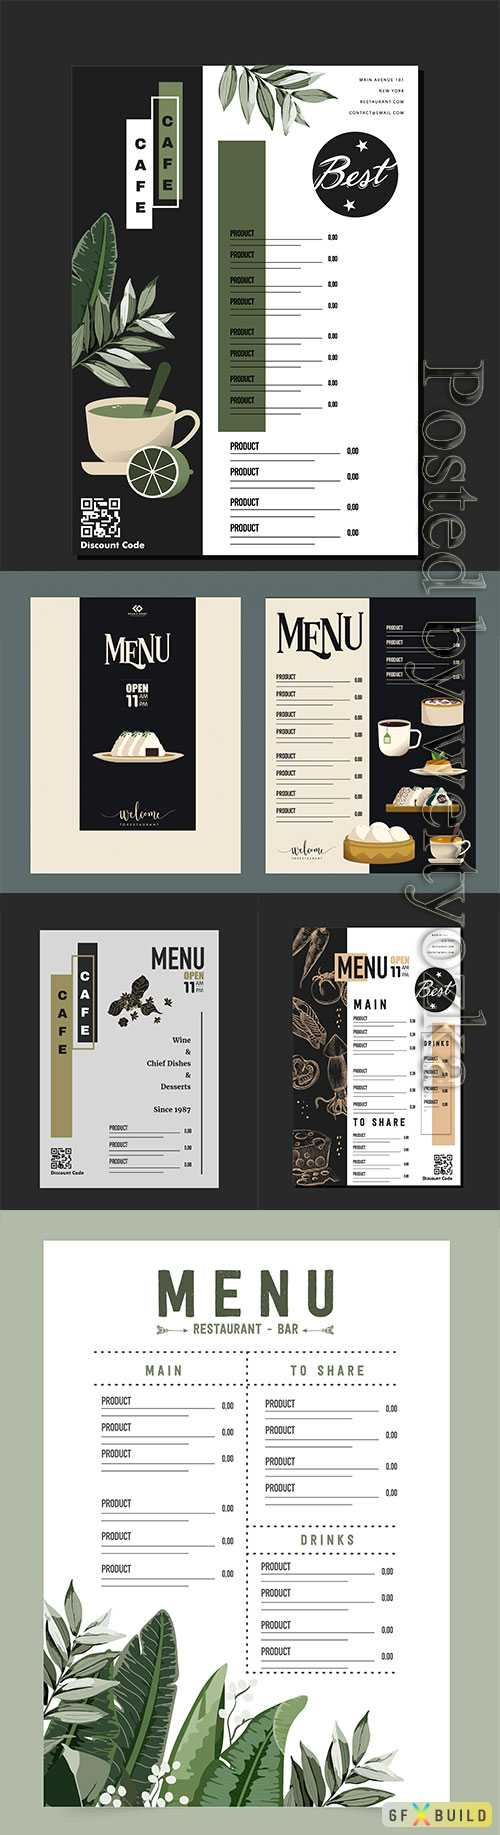 Menu for a cafe and restaurant with a beautiful design in vector